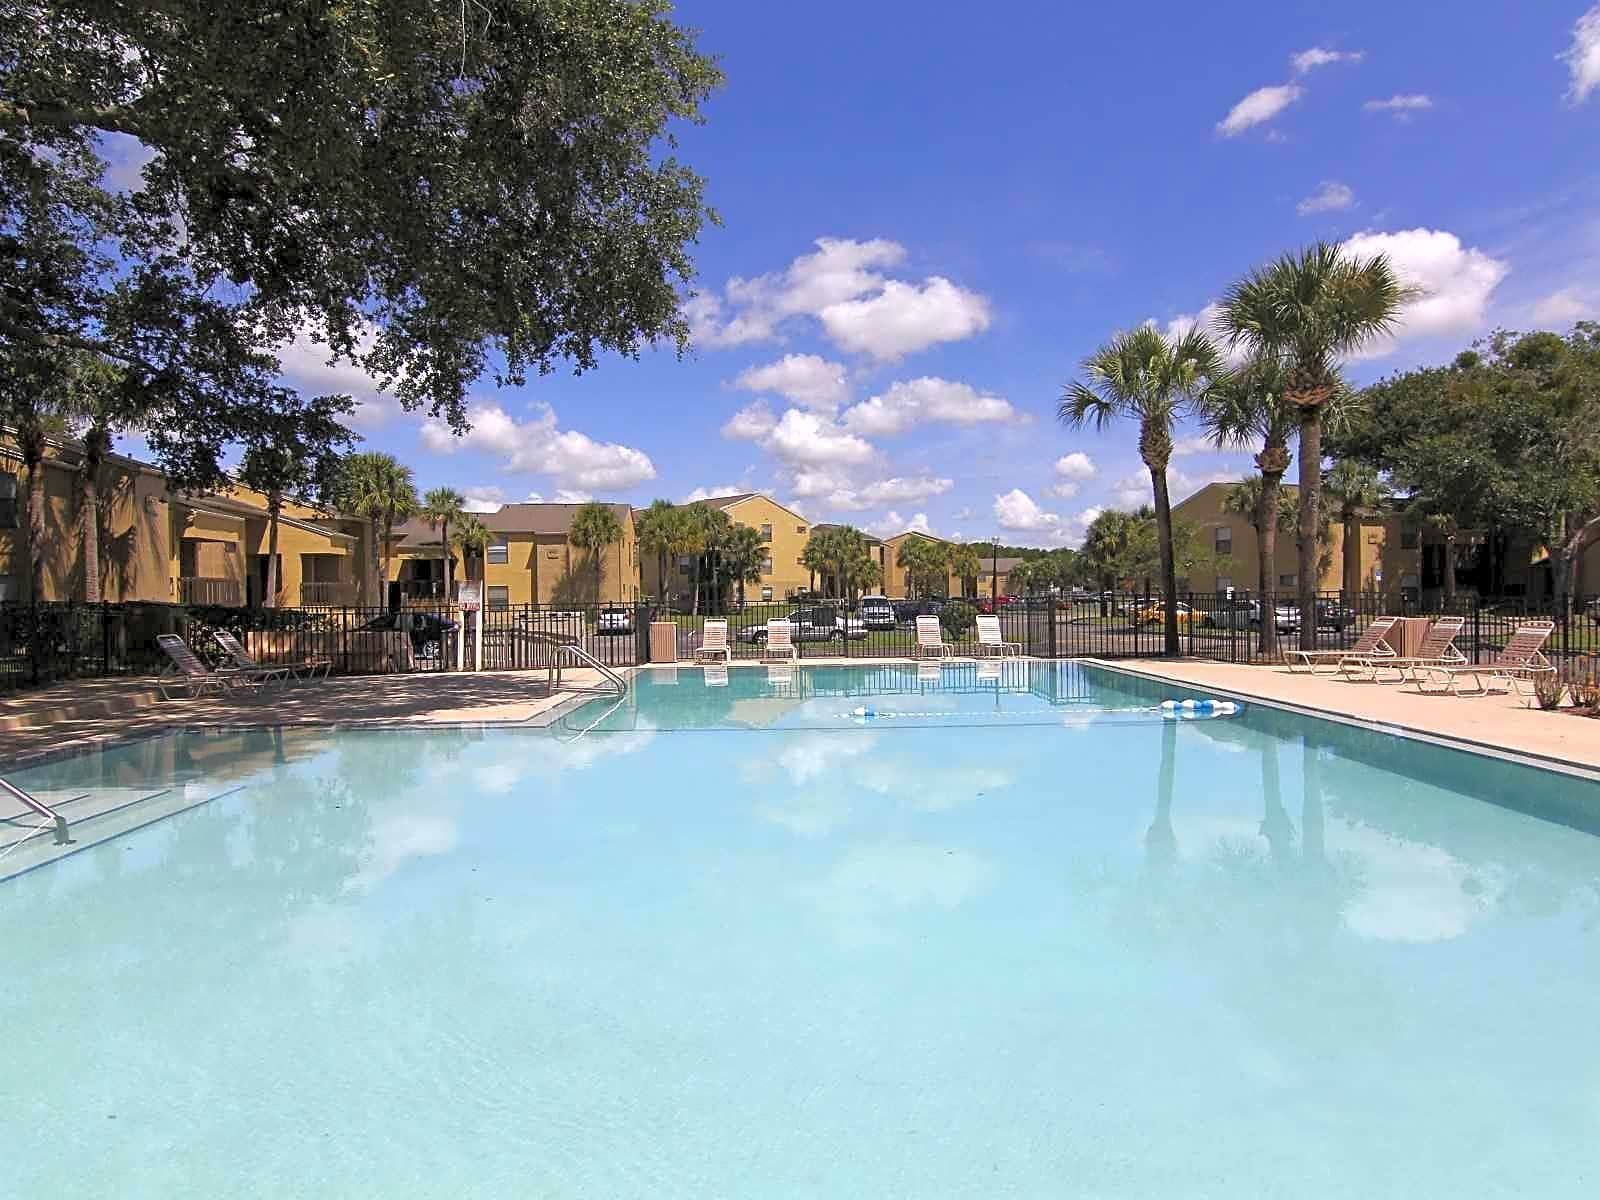 Photo: Orlando Apartment for Rent - $579.00 / month; 1 Bd & 1 Ba